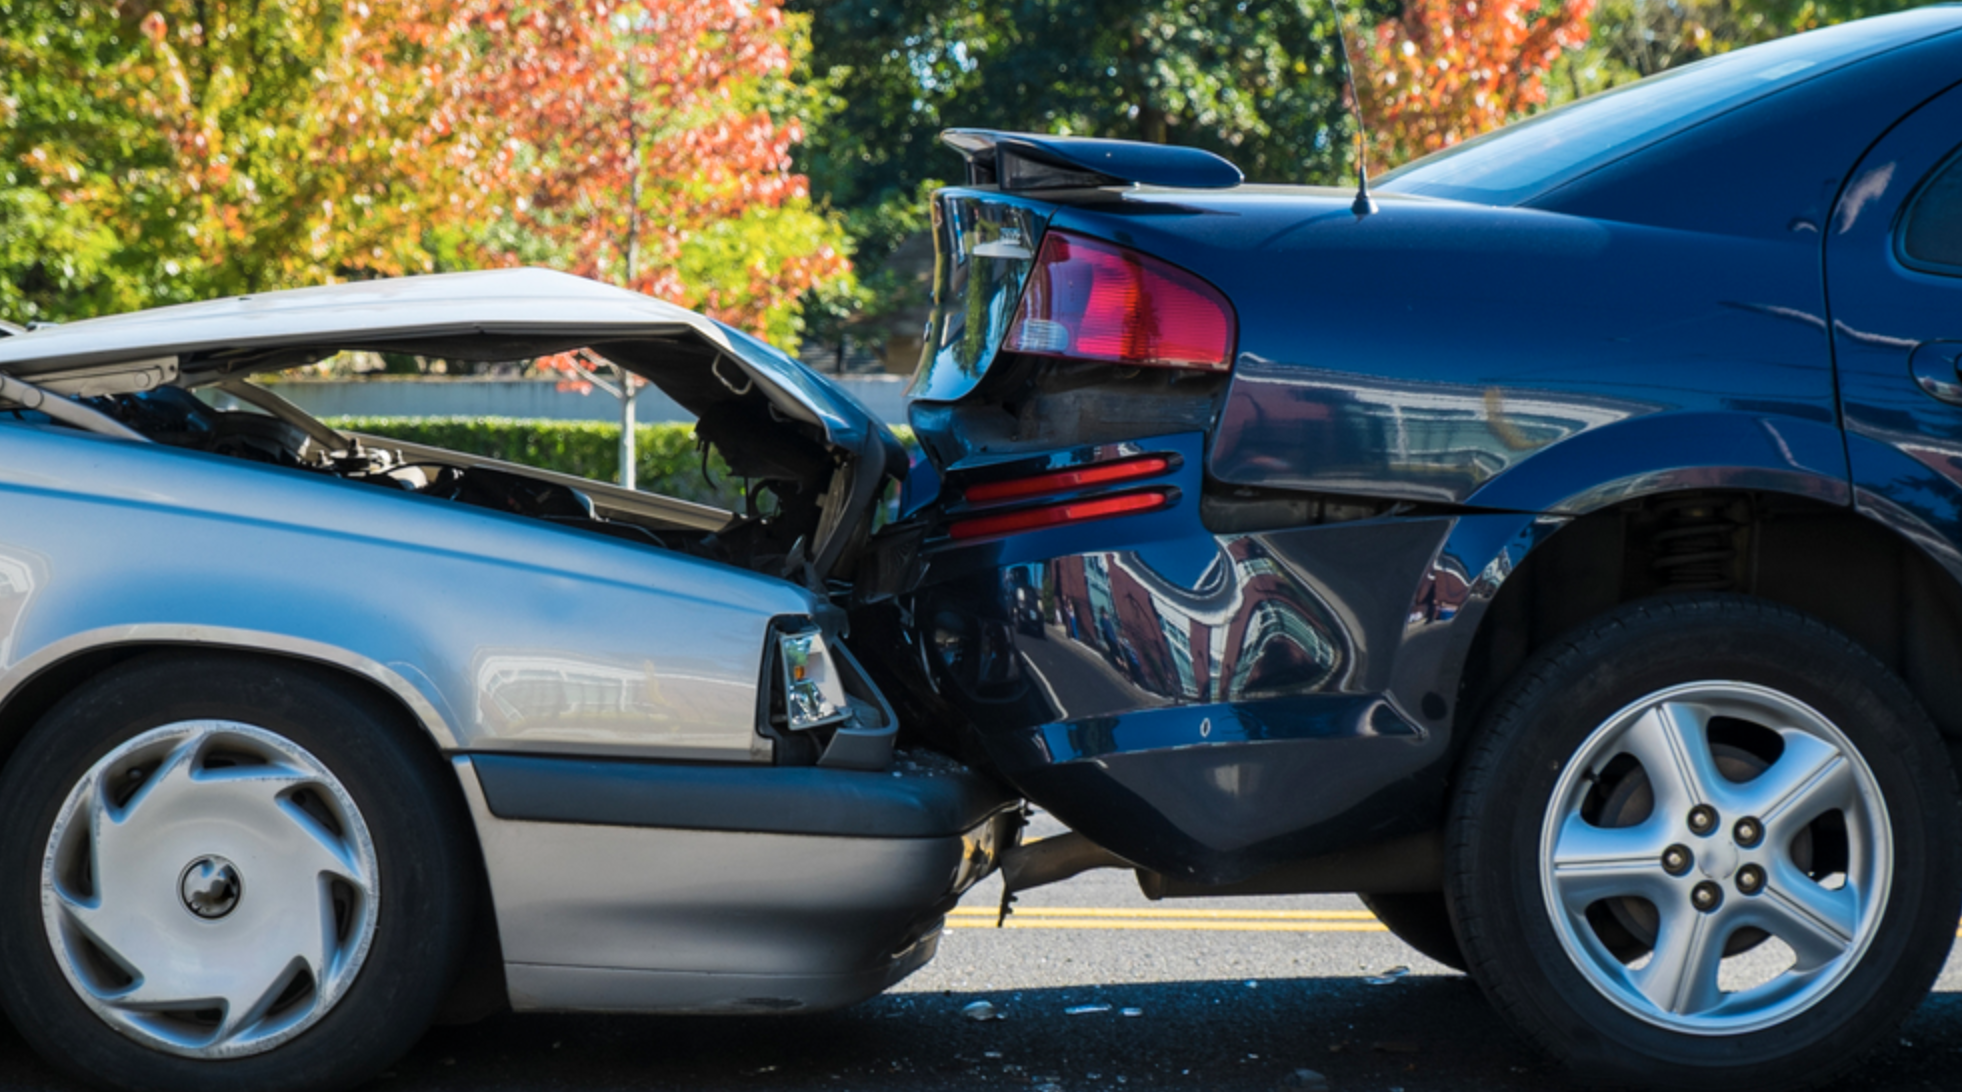 How long after a car accident do you have to see a chiropractor?